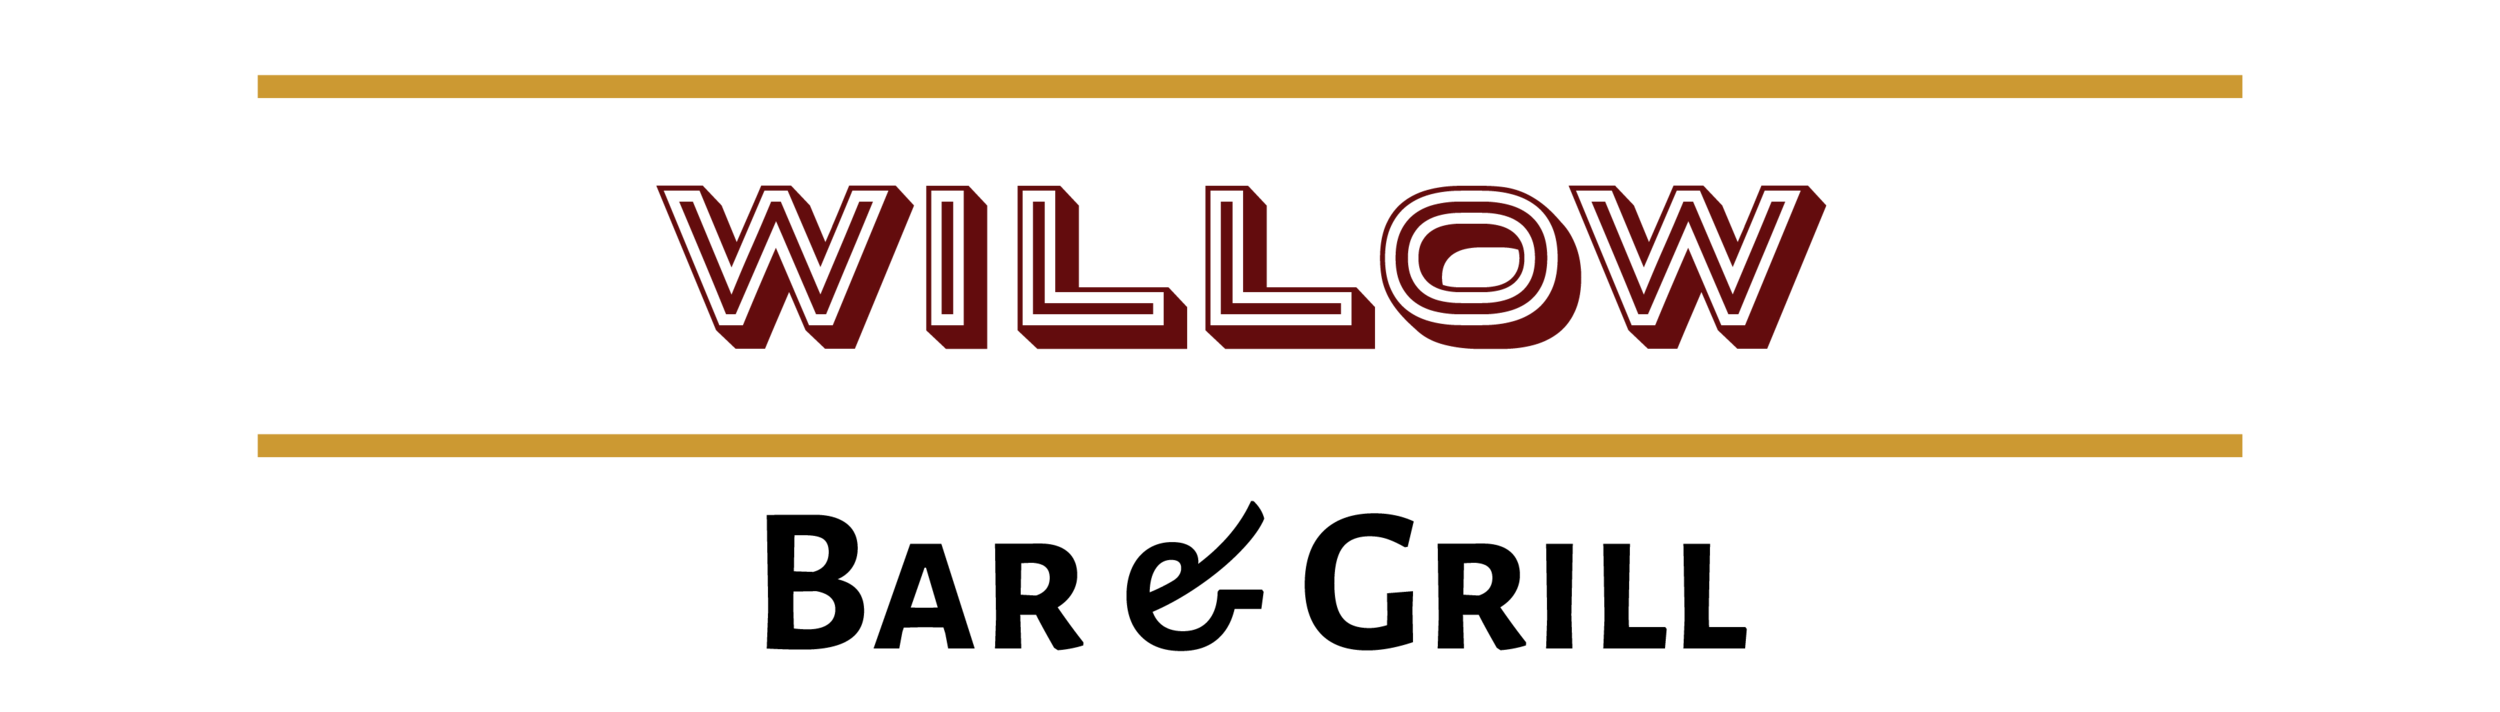 Willow Bar and Grill_Bar Logo copy.png